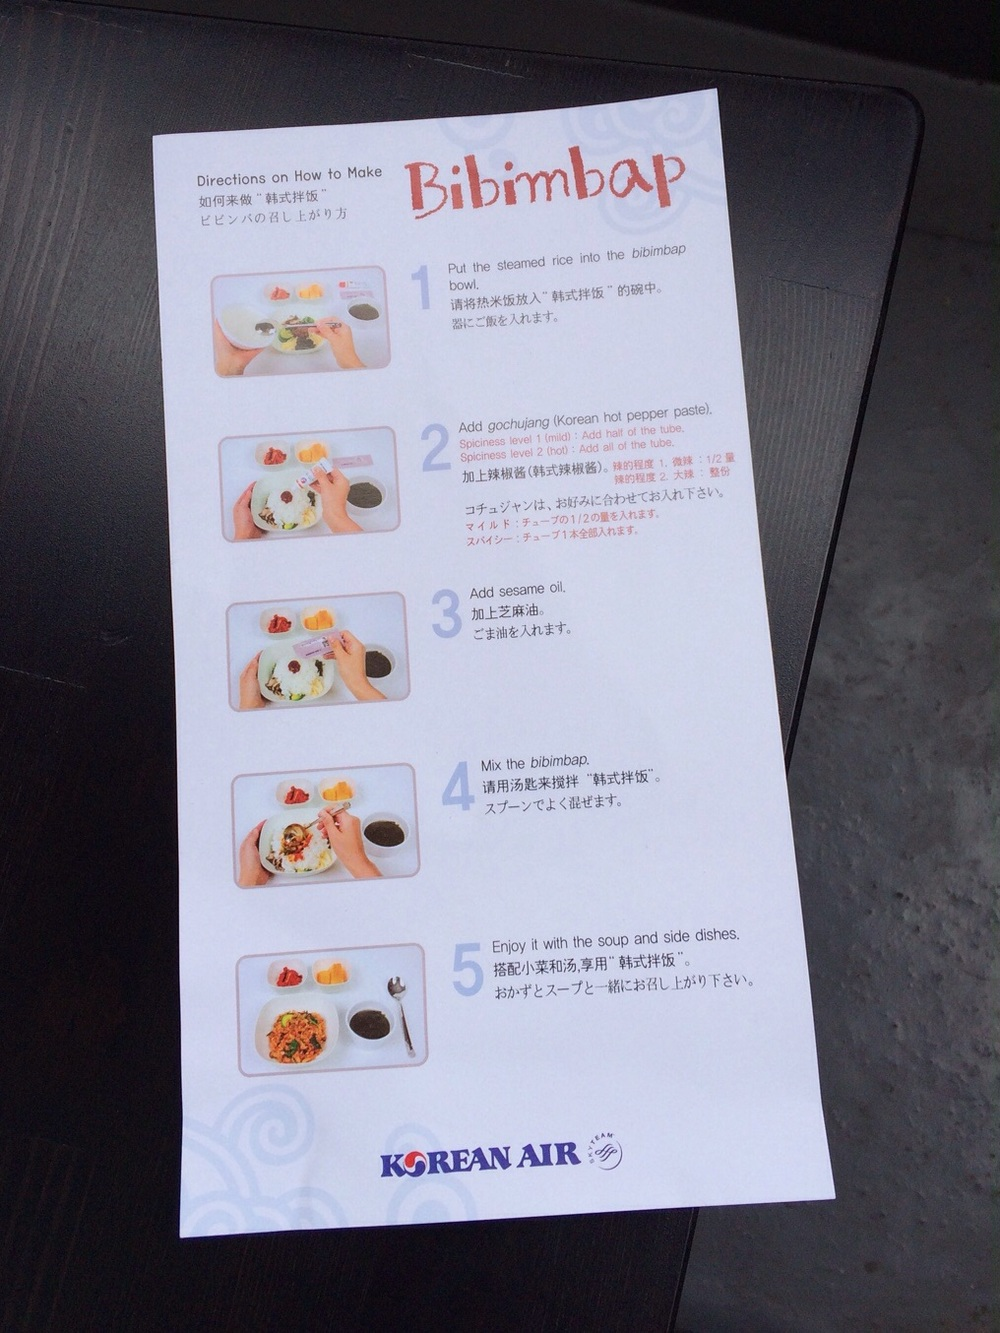 Bibimbap instructions for the uninitiated.